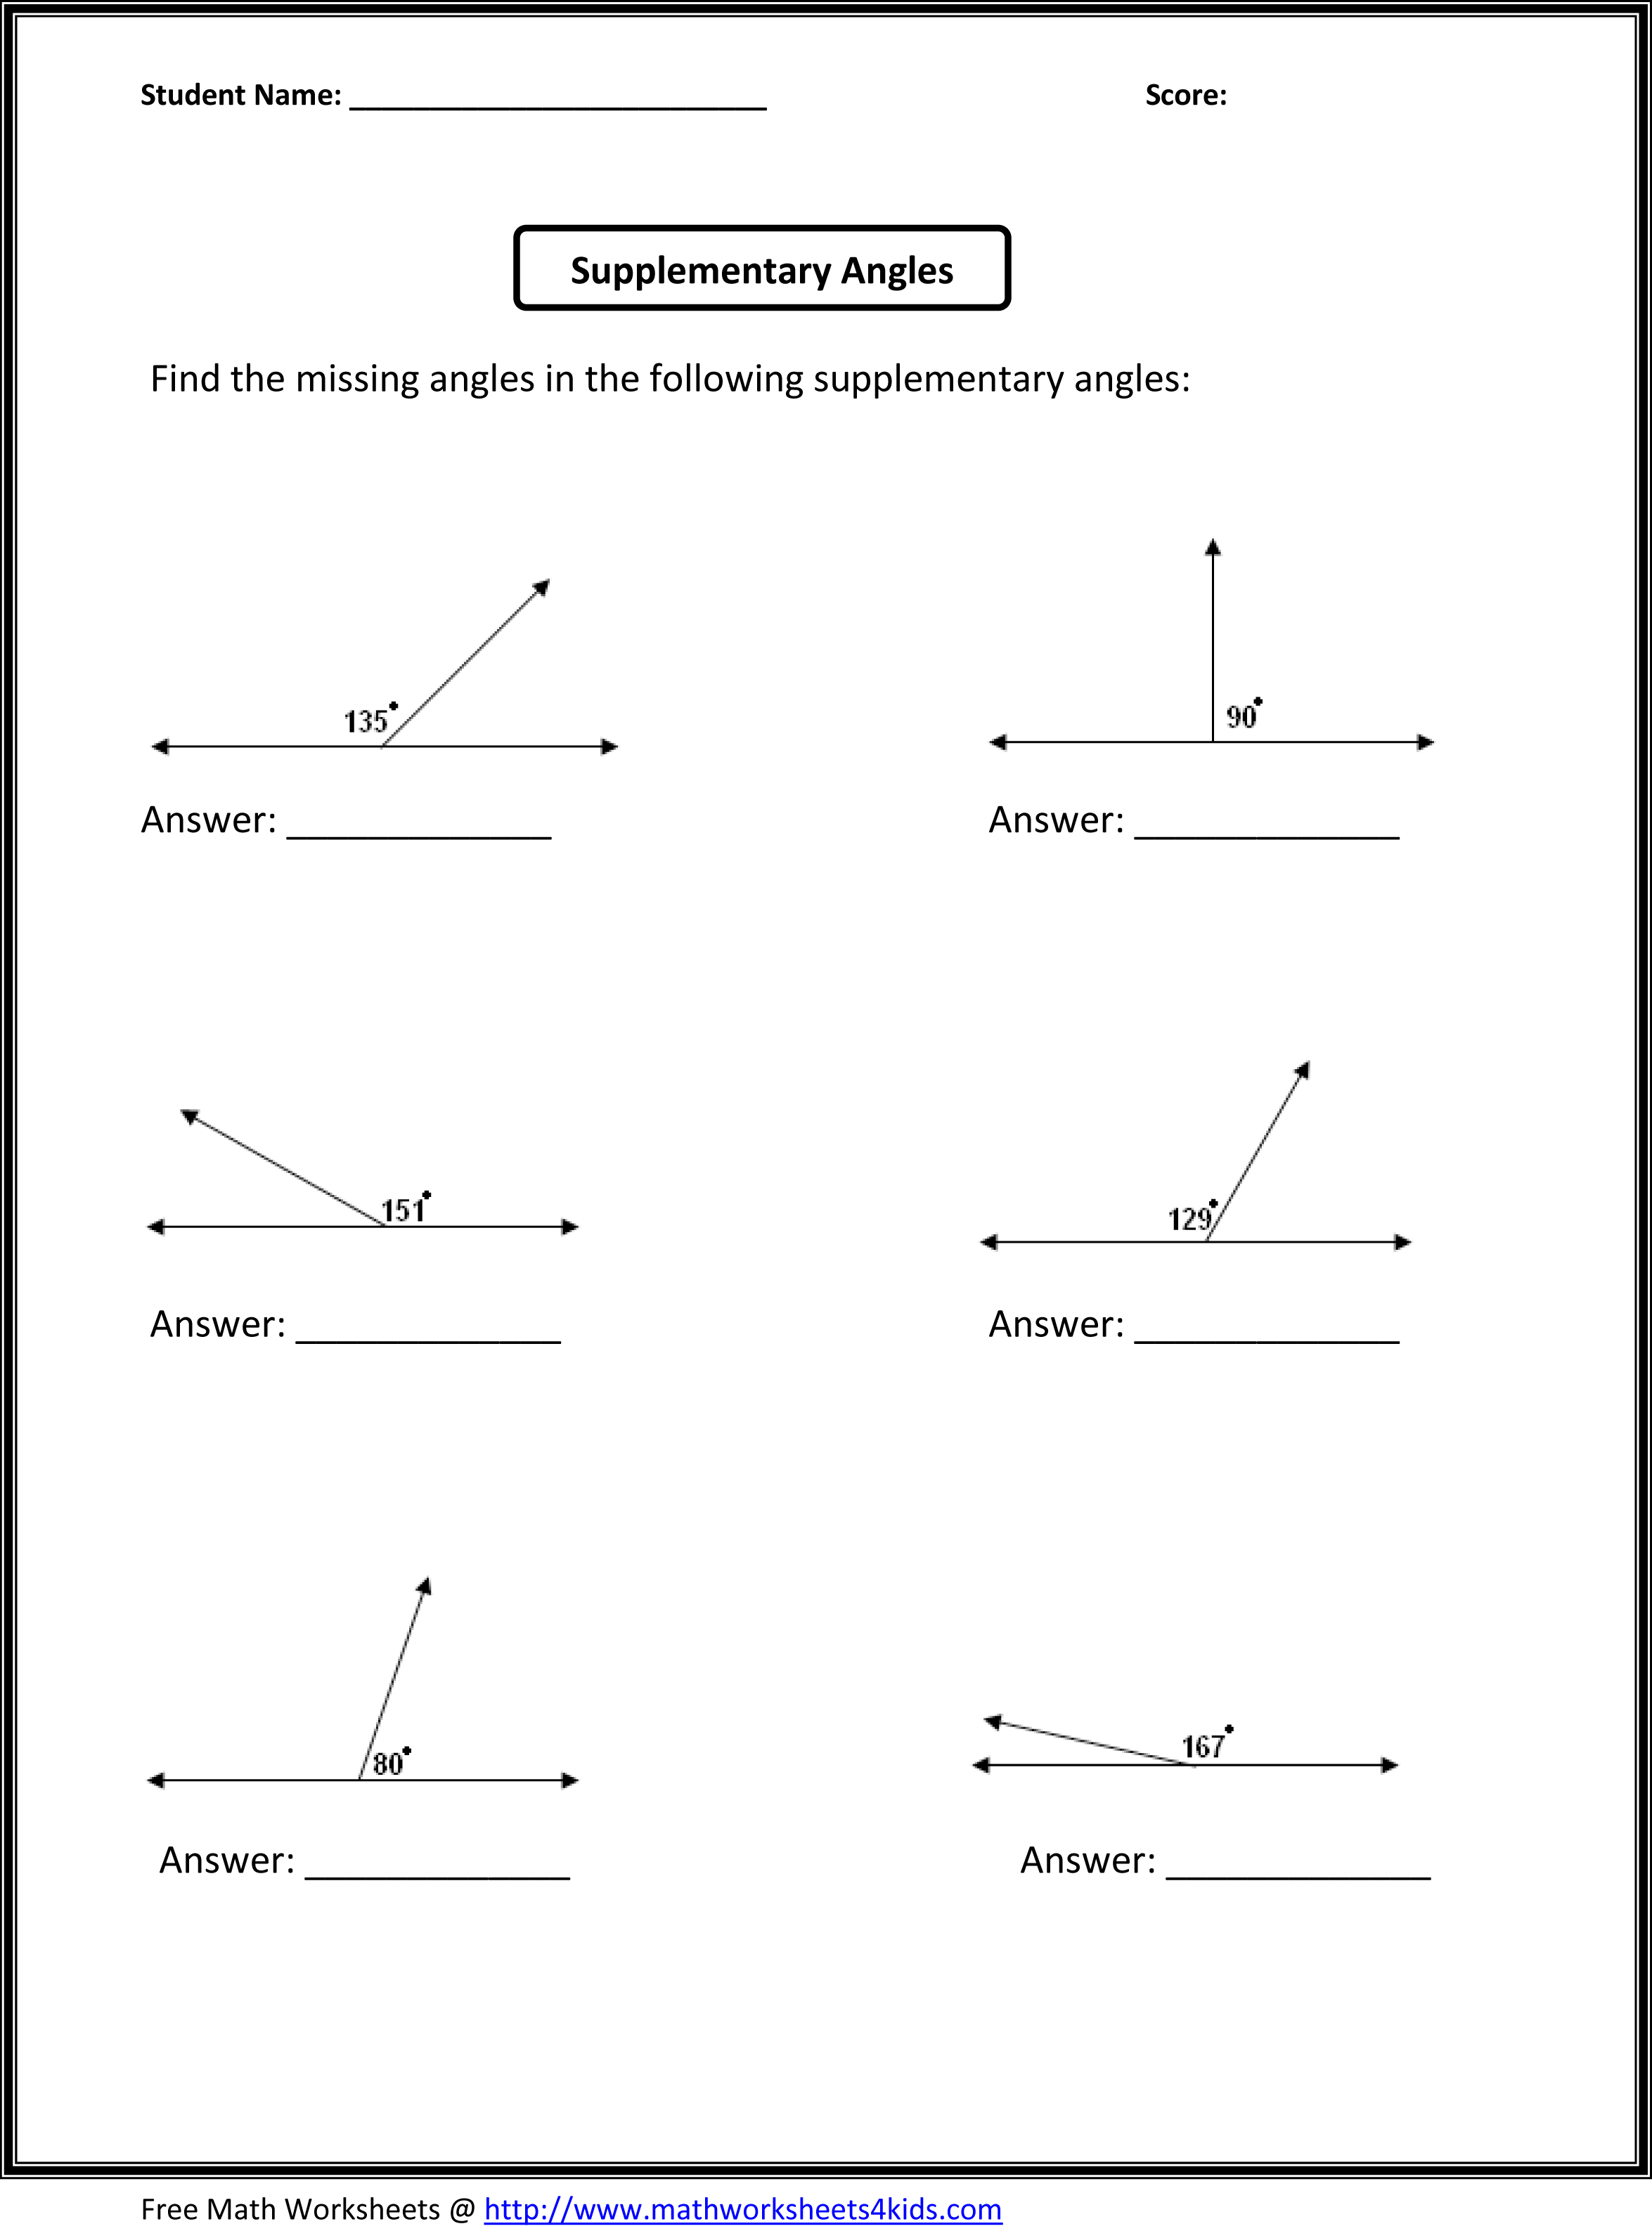 Math Worksheets For Grade 6 Math Worksheets 4th Grade Area 6 Math – 6th Grade Math Worksheets Pdf